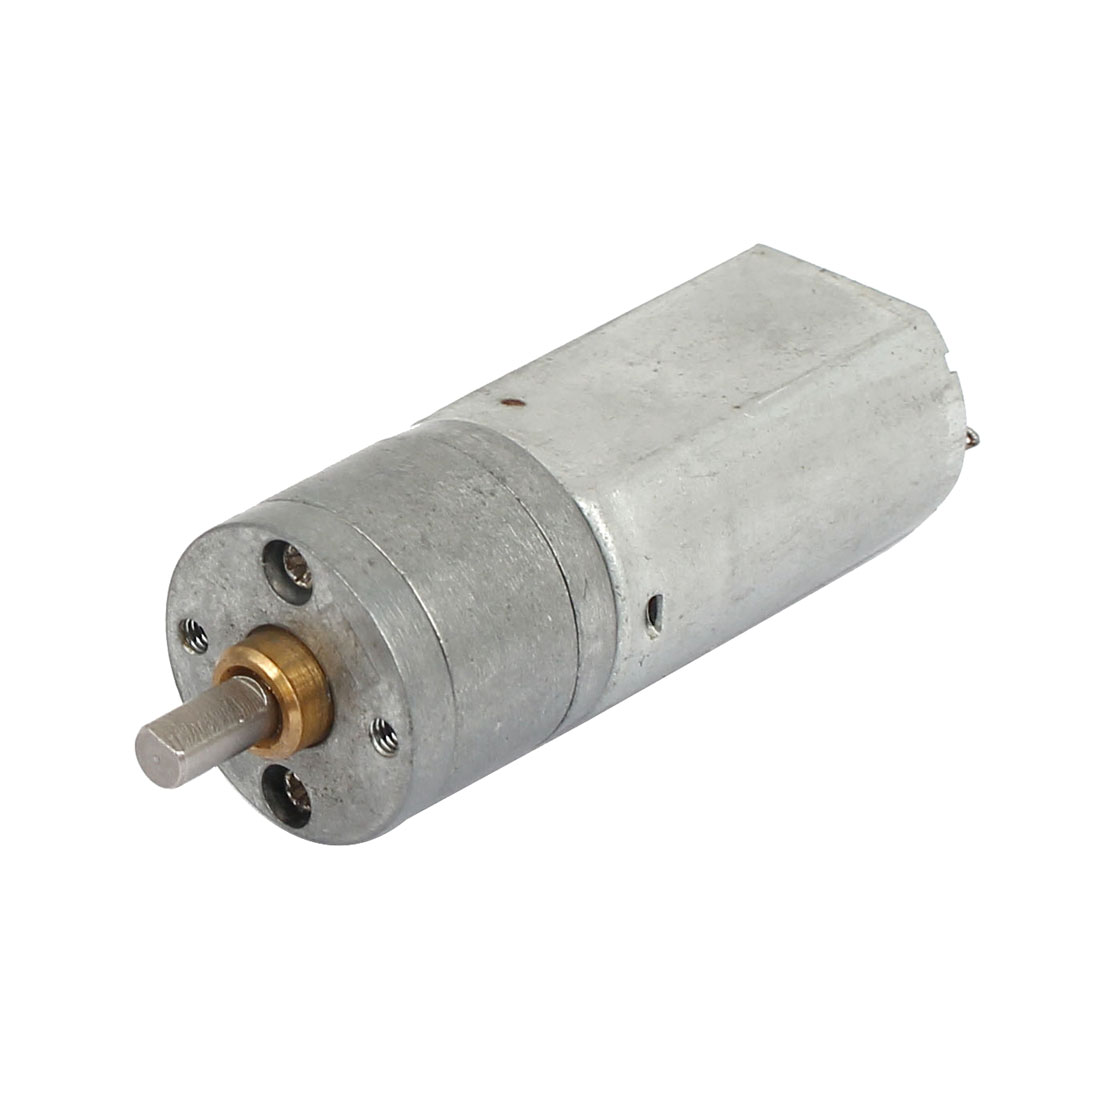 FF-180SH DC 9V Miniature Electric Shaver Magnetic Micro Motor